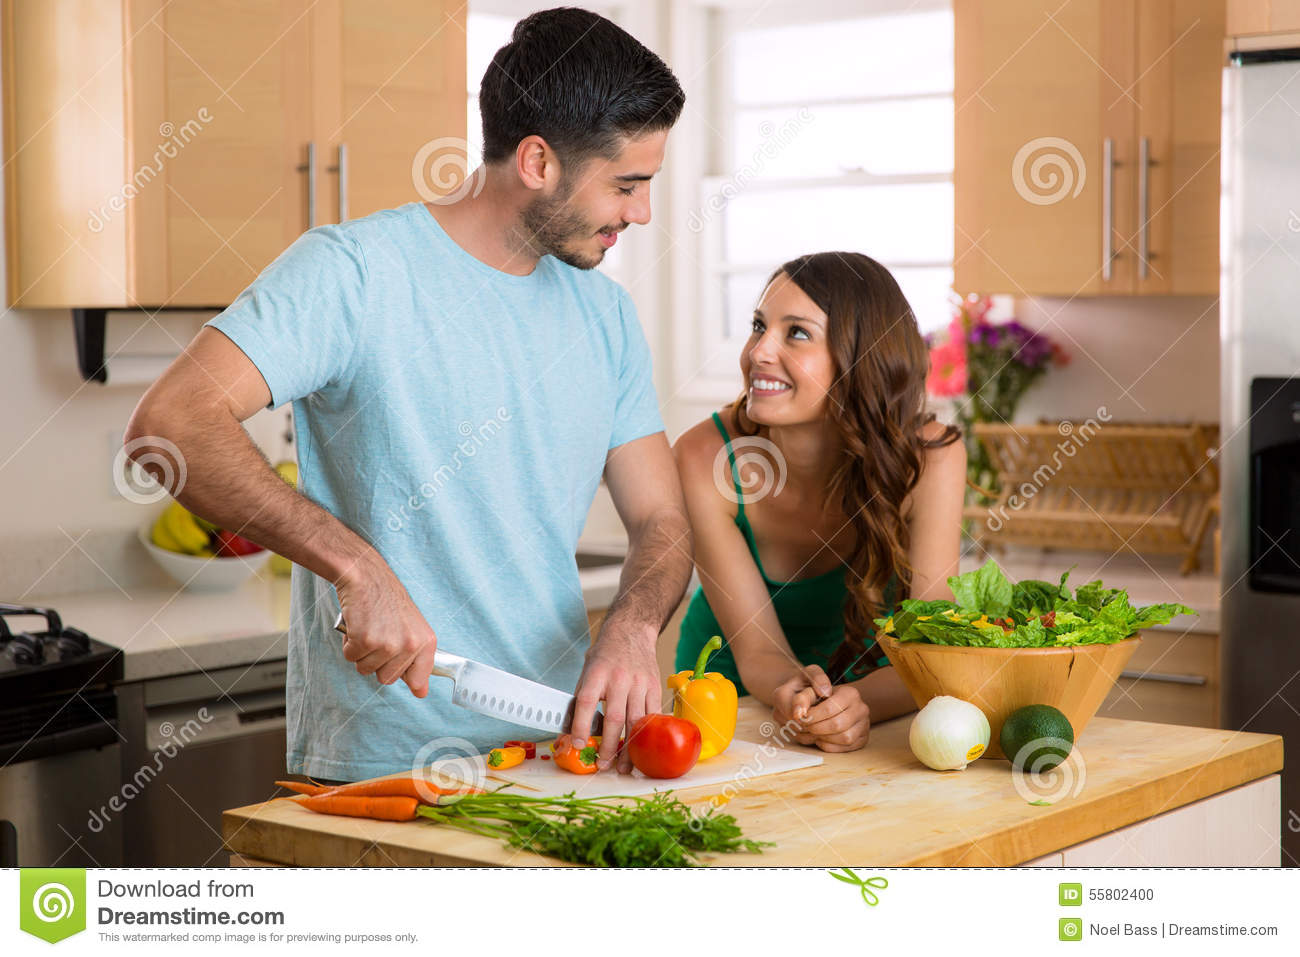 salad lovers dating This is hilarious if you thought they had thought of everything when it came to online dating sites - think again here is one more that just may perk your veggie foodie interests (and tummy) if you are single and looking for love - or your salad soul mate single, and ready to munch.